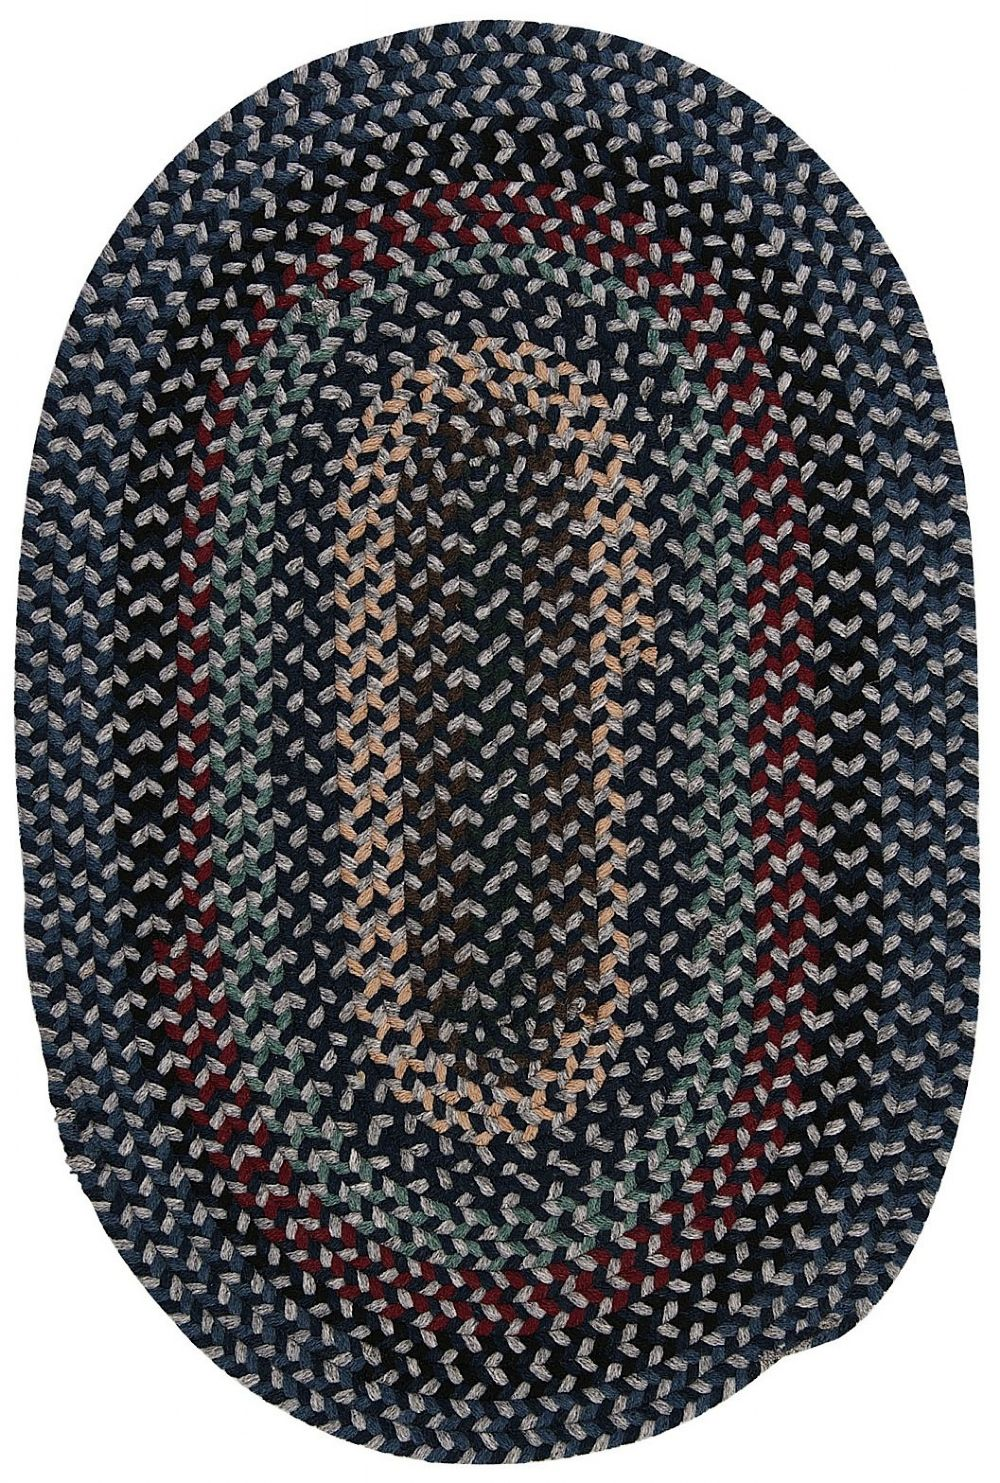 colonial mills boston common braided area rug collection